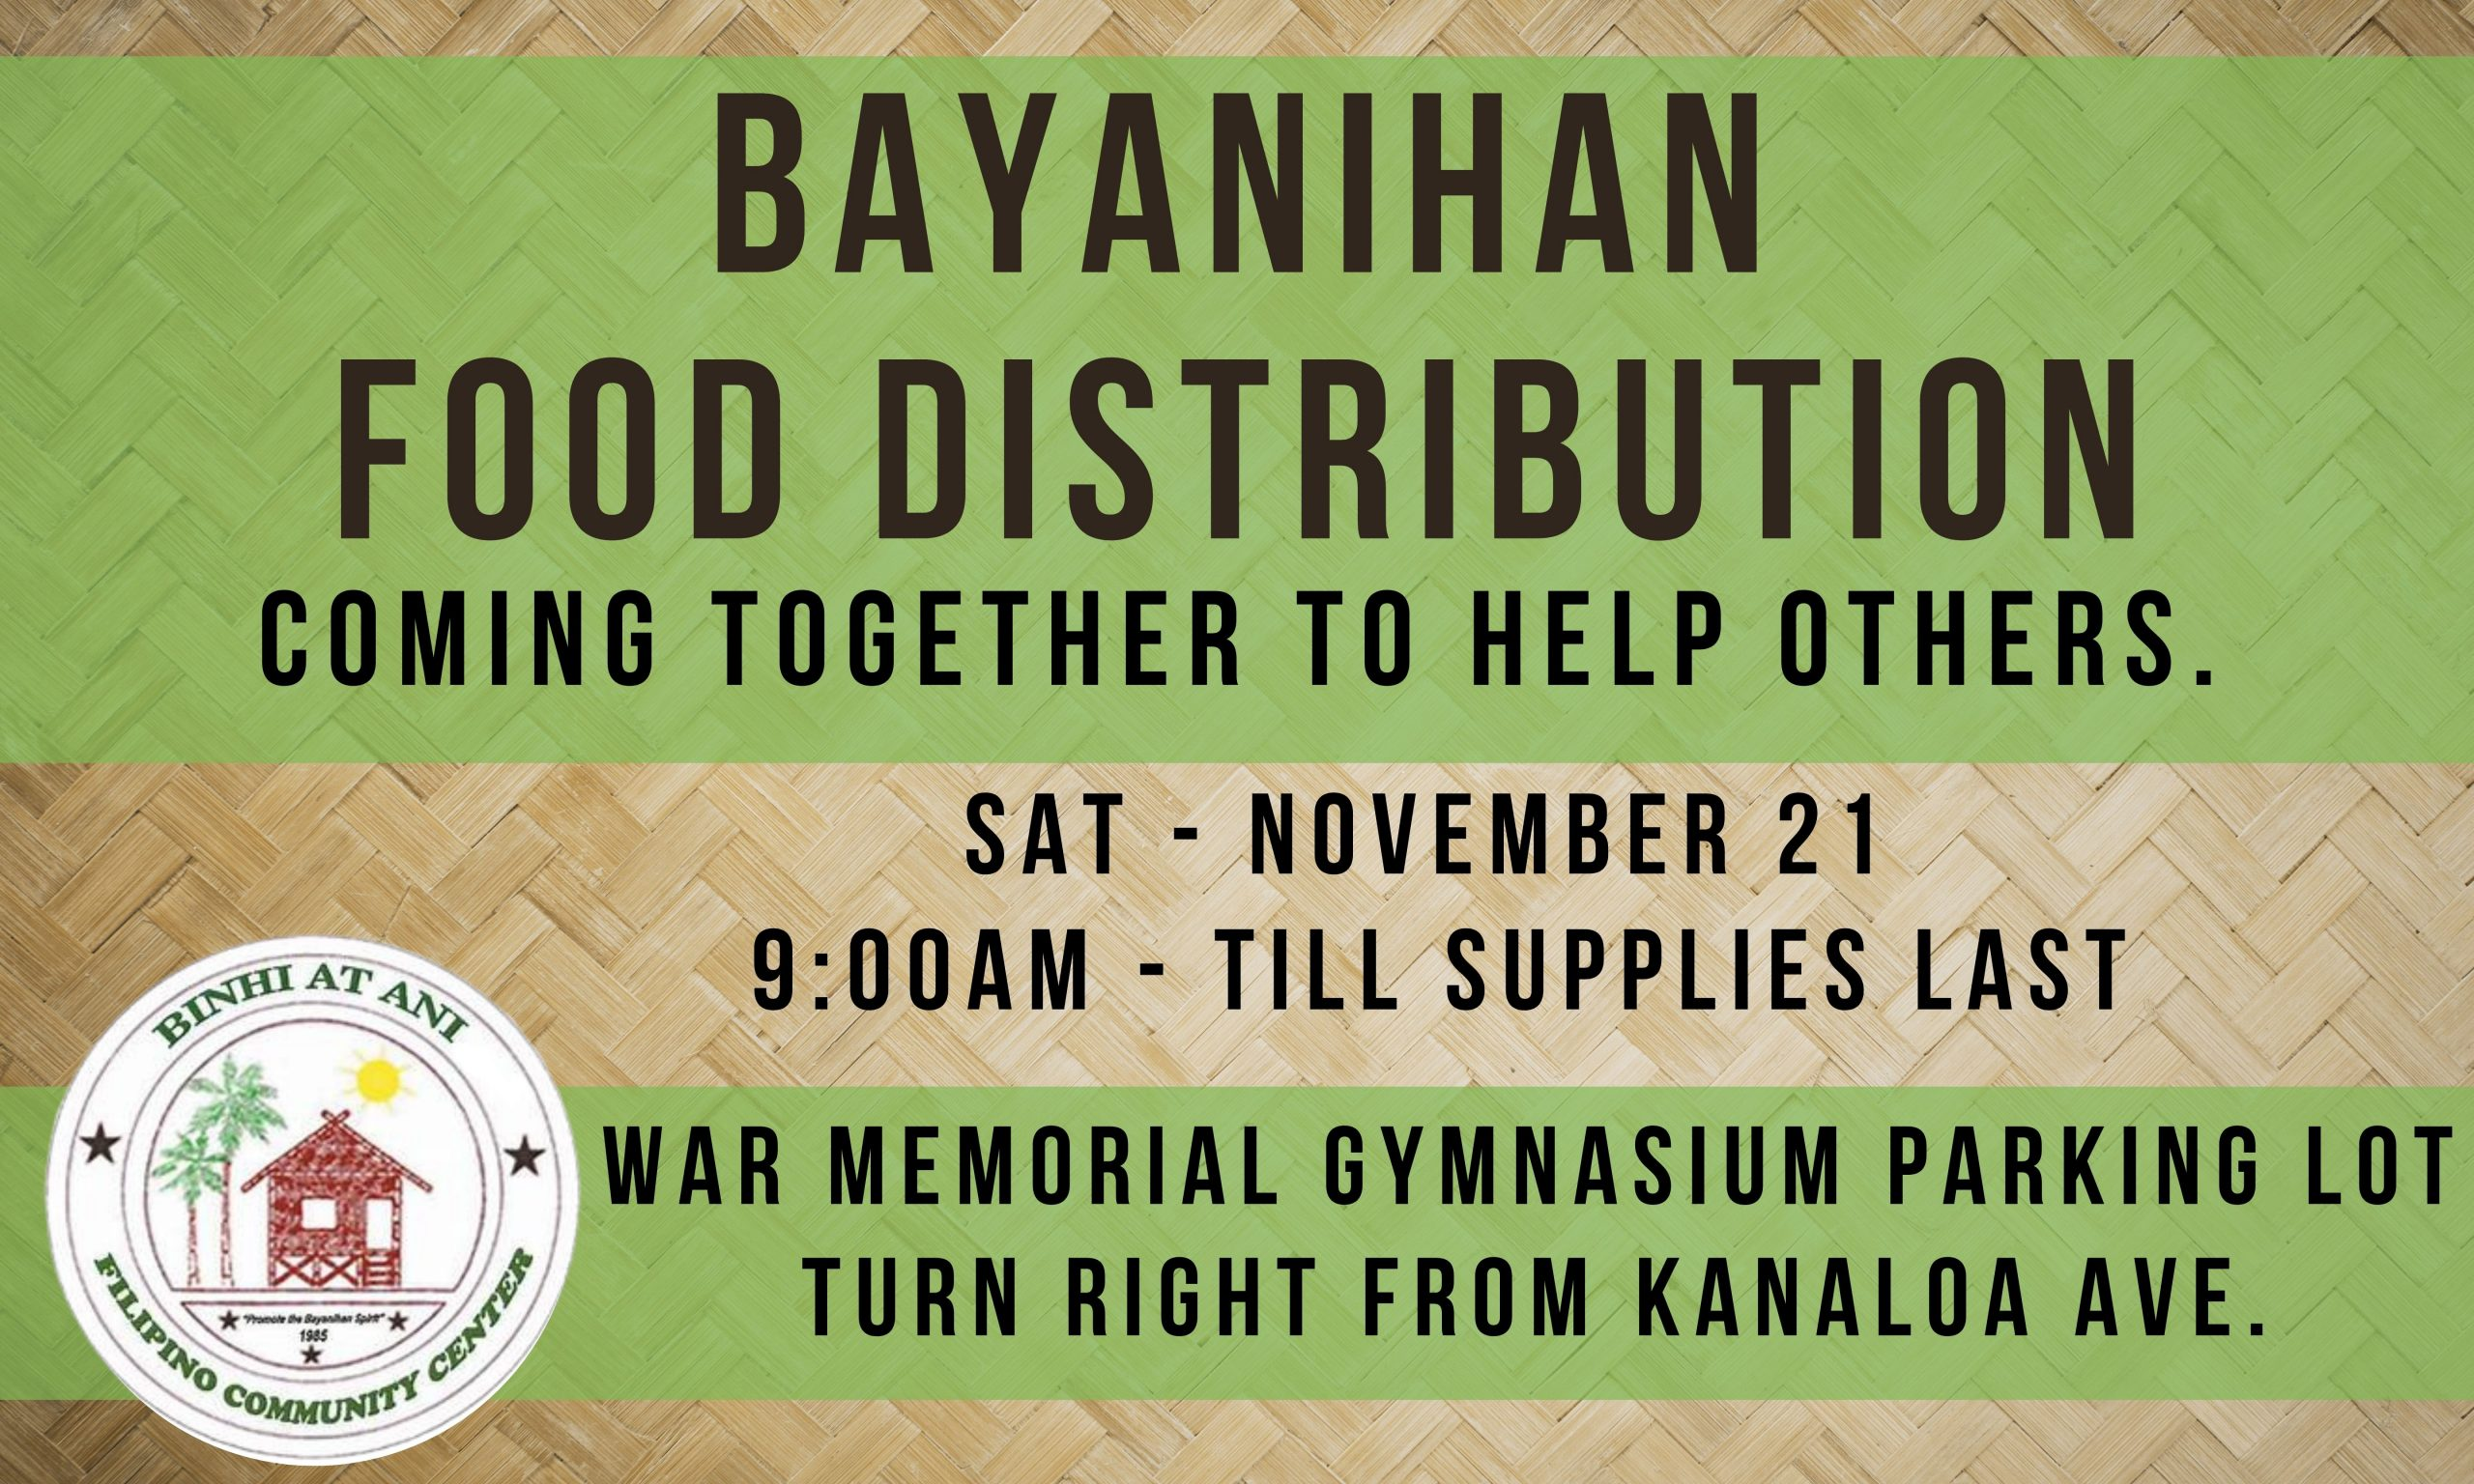 Thanksgiving Bayanihan Food Distribution on Nov. 21 in Wailuku